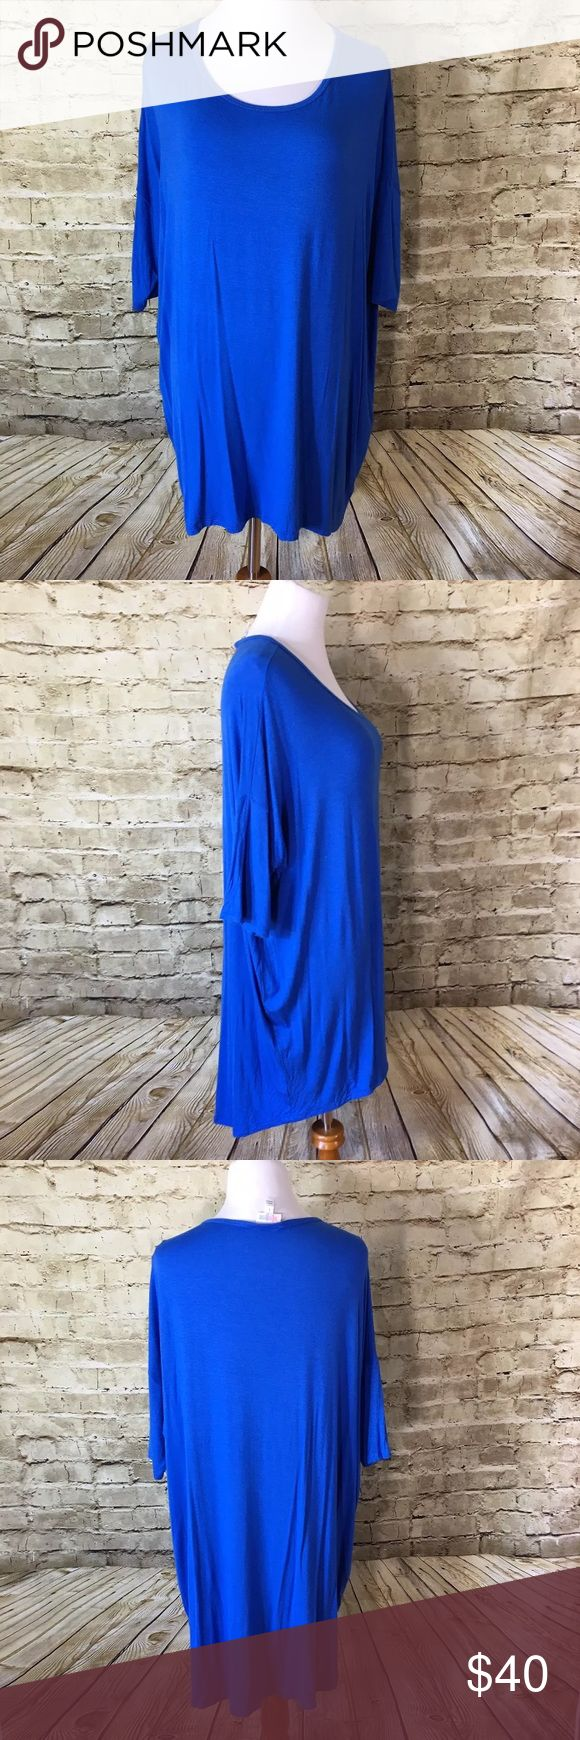 "Lularoe Cobalt Blue Irma Hi Low Name Brand: Lularoe  Condition: Pre Owned, Excellent condition light wear, no holes, stains or flaws to note  Size: Large (see measurements)  Color: Blue  Style: Irma  Material: 95% Rayon 5% Spandex   Always check the measurements, label sizes are not consistent.   Measurements are approximate, and are of item laying flat and unstreched: Length:31-37 "" Bust:31"" Sleeve: 6"" LuLaRoe Tops Tees - Short Sleeve"